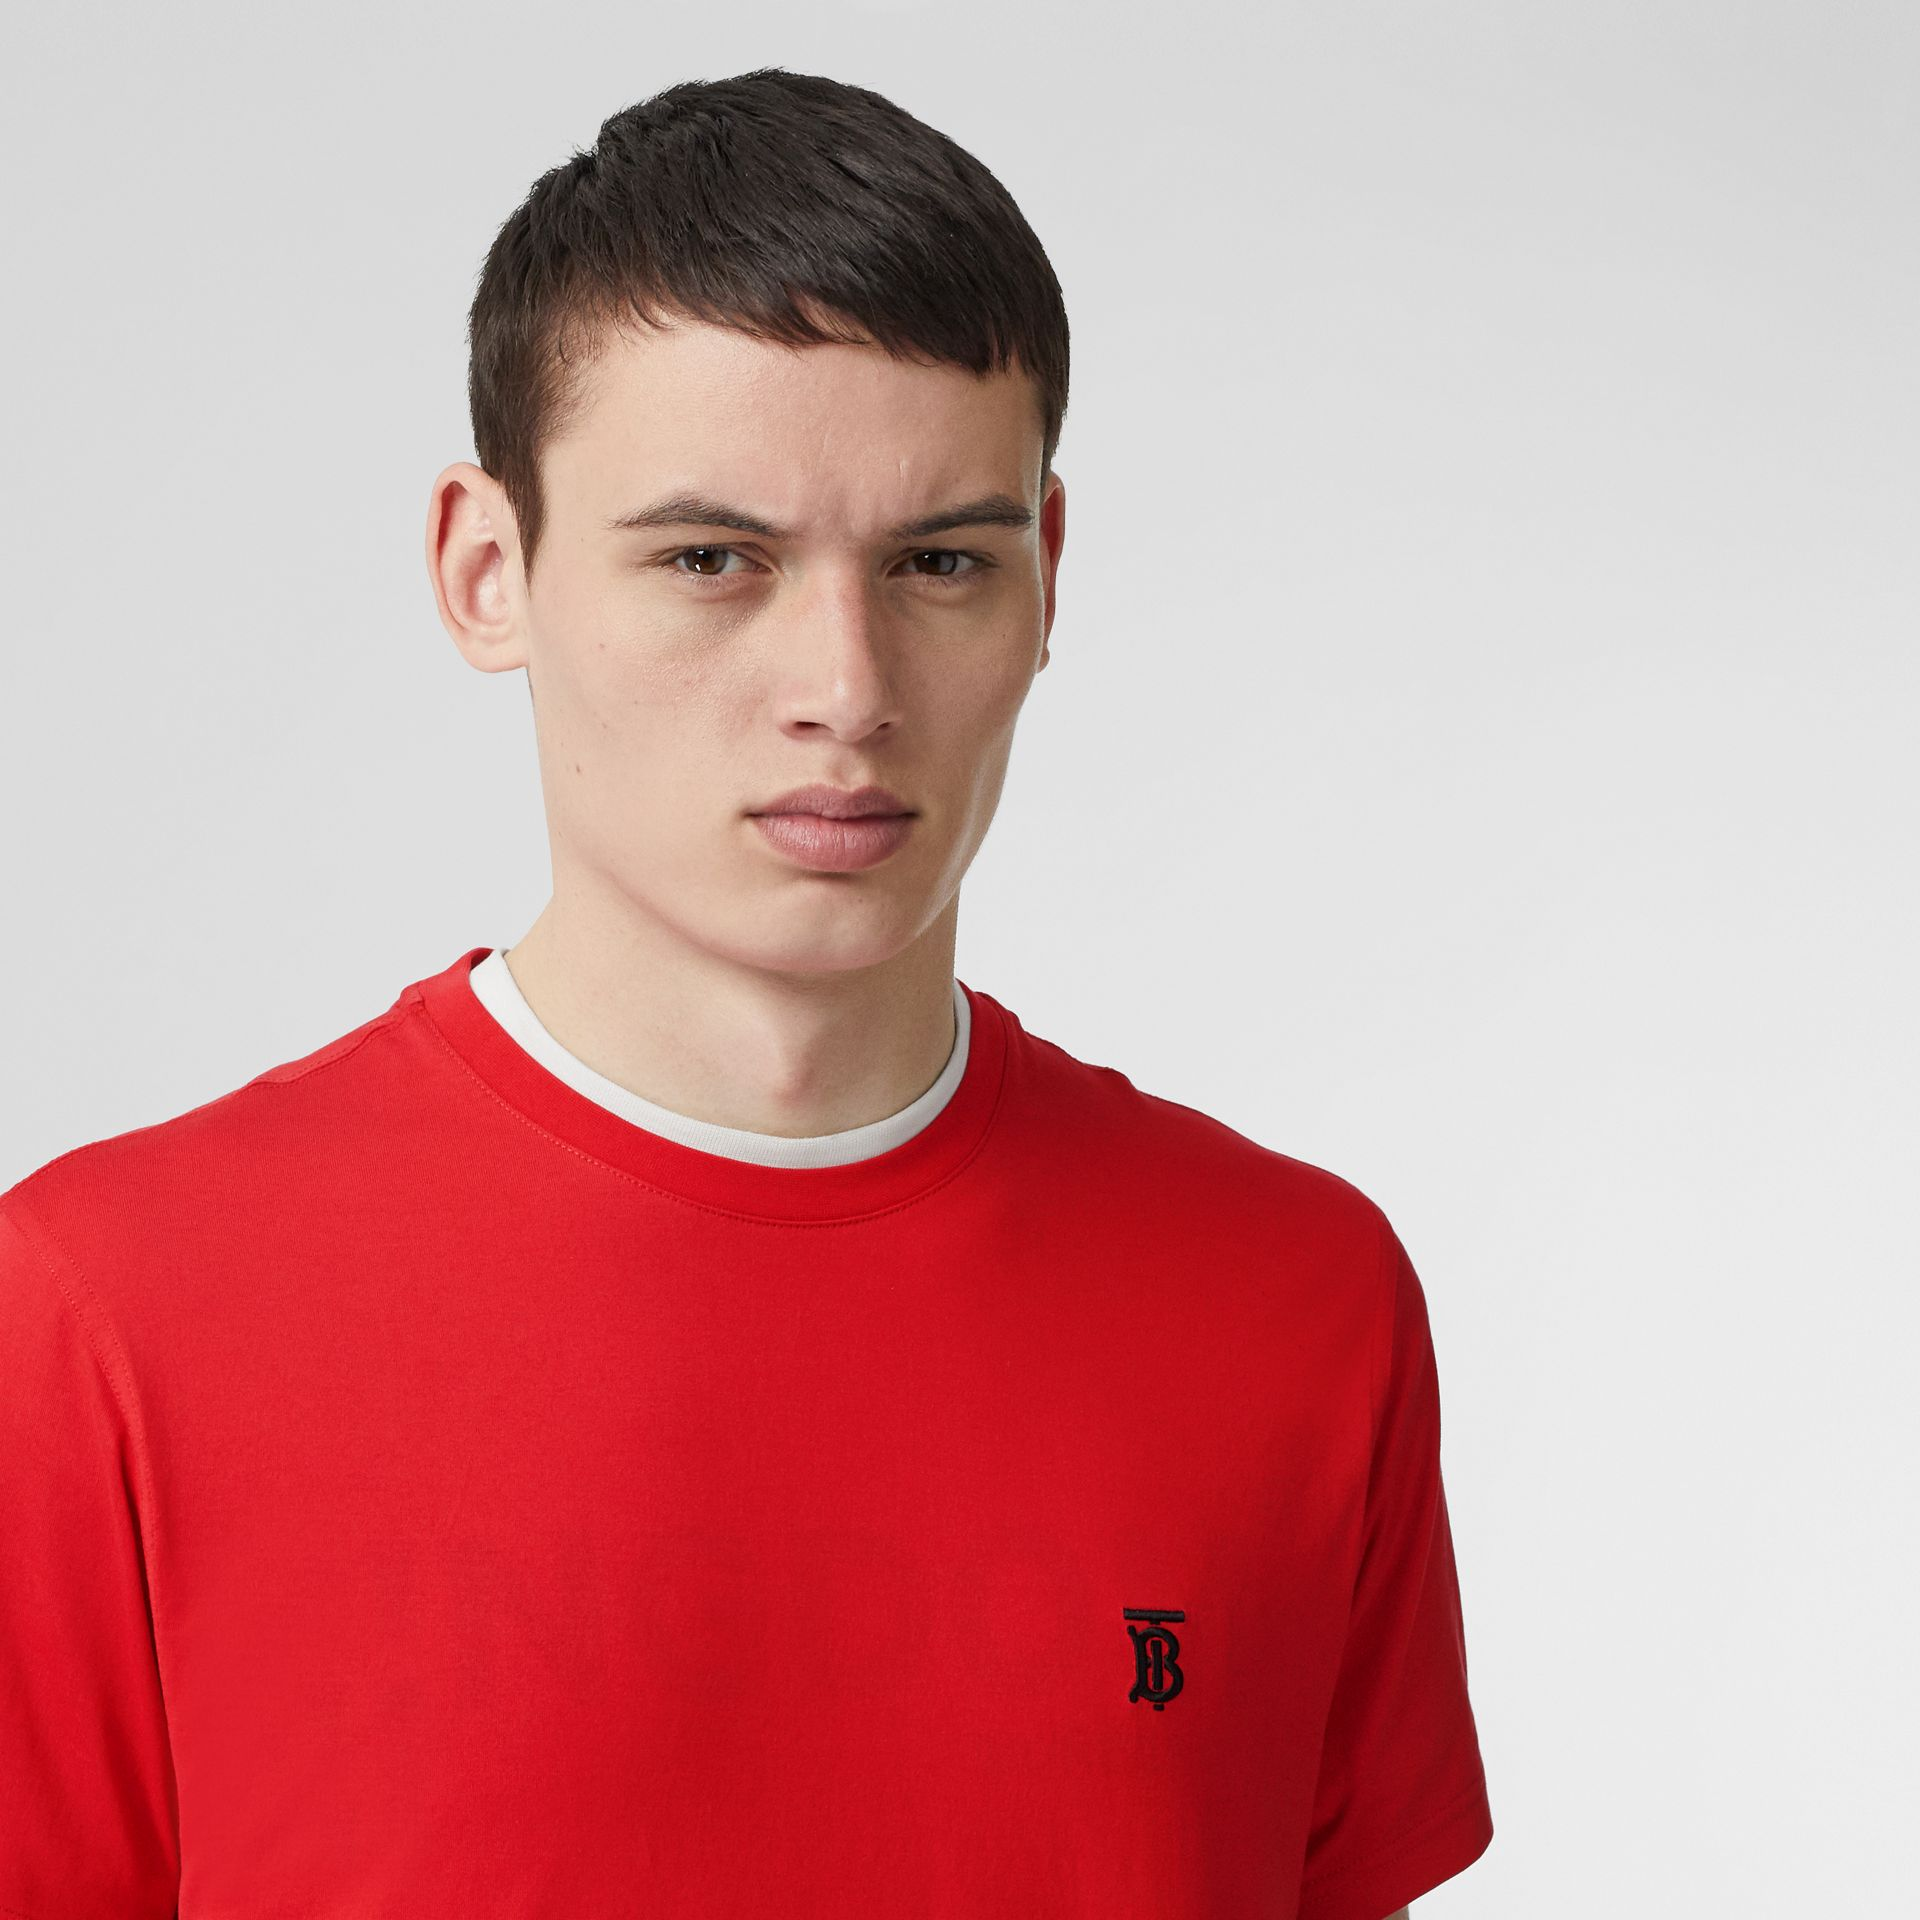 Monogram Motif Cotton T-shirt in Bright Red - Men | Burberry United Kingdom - gallery image 1